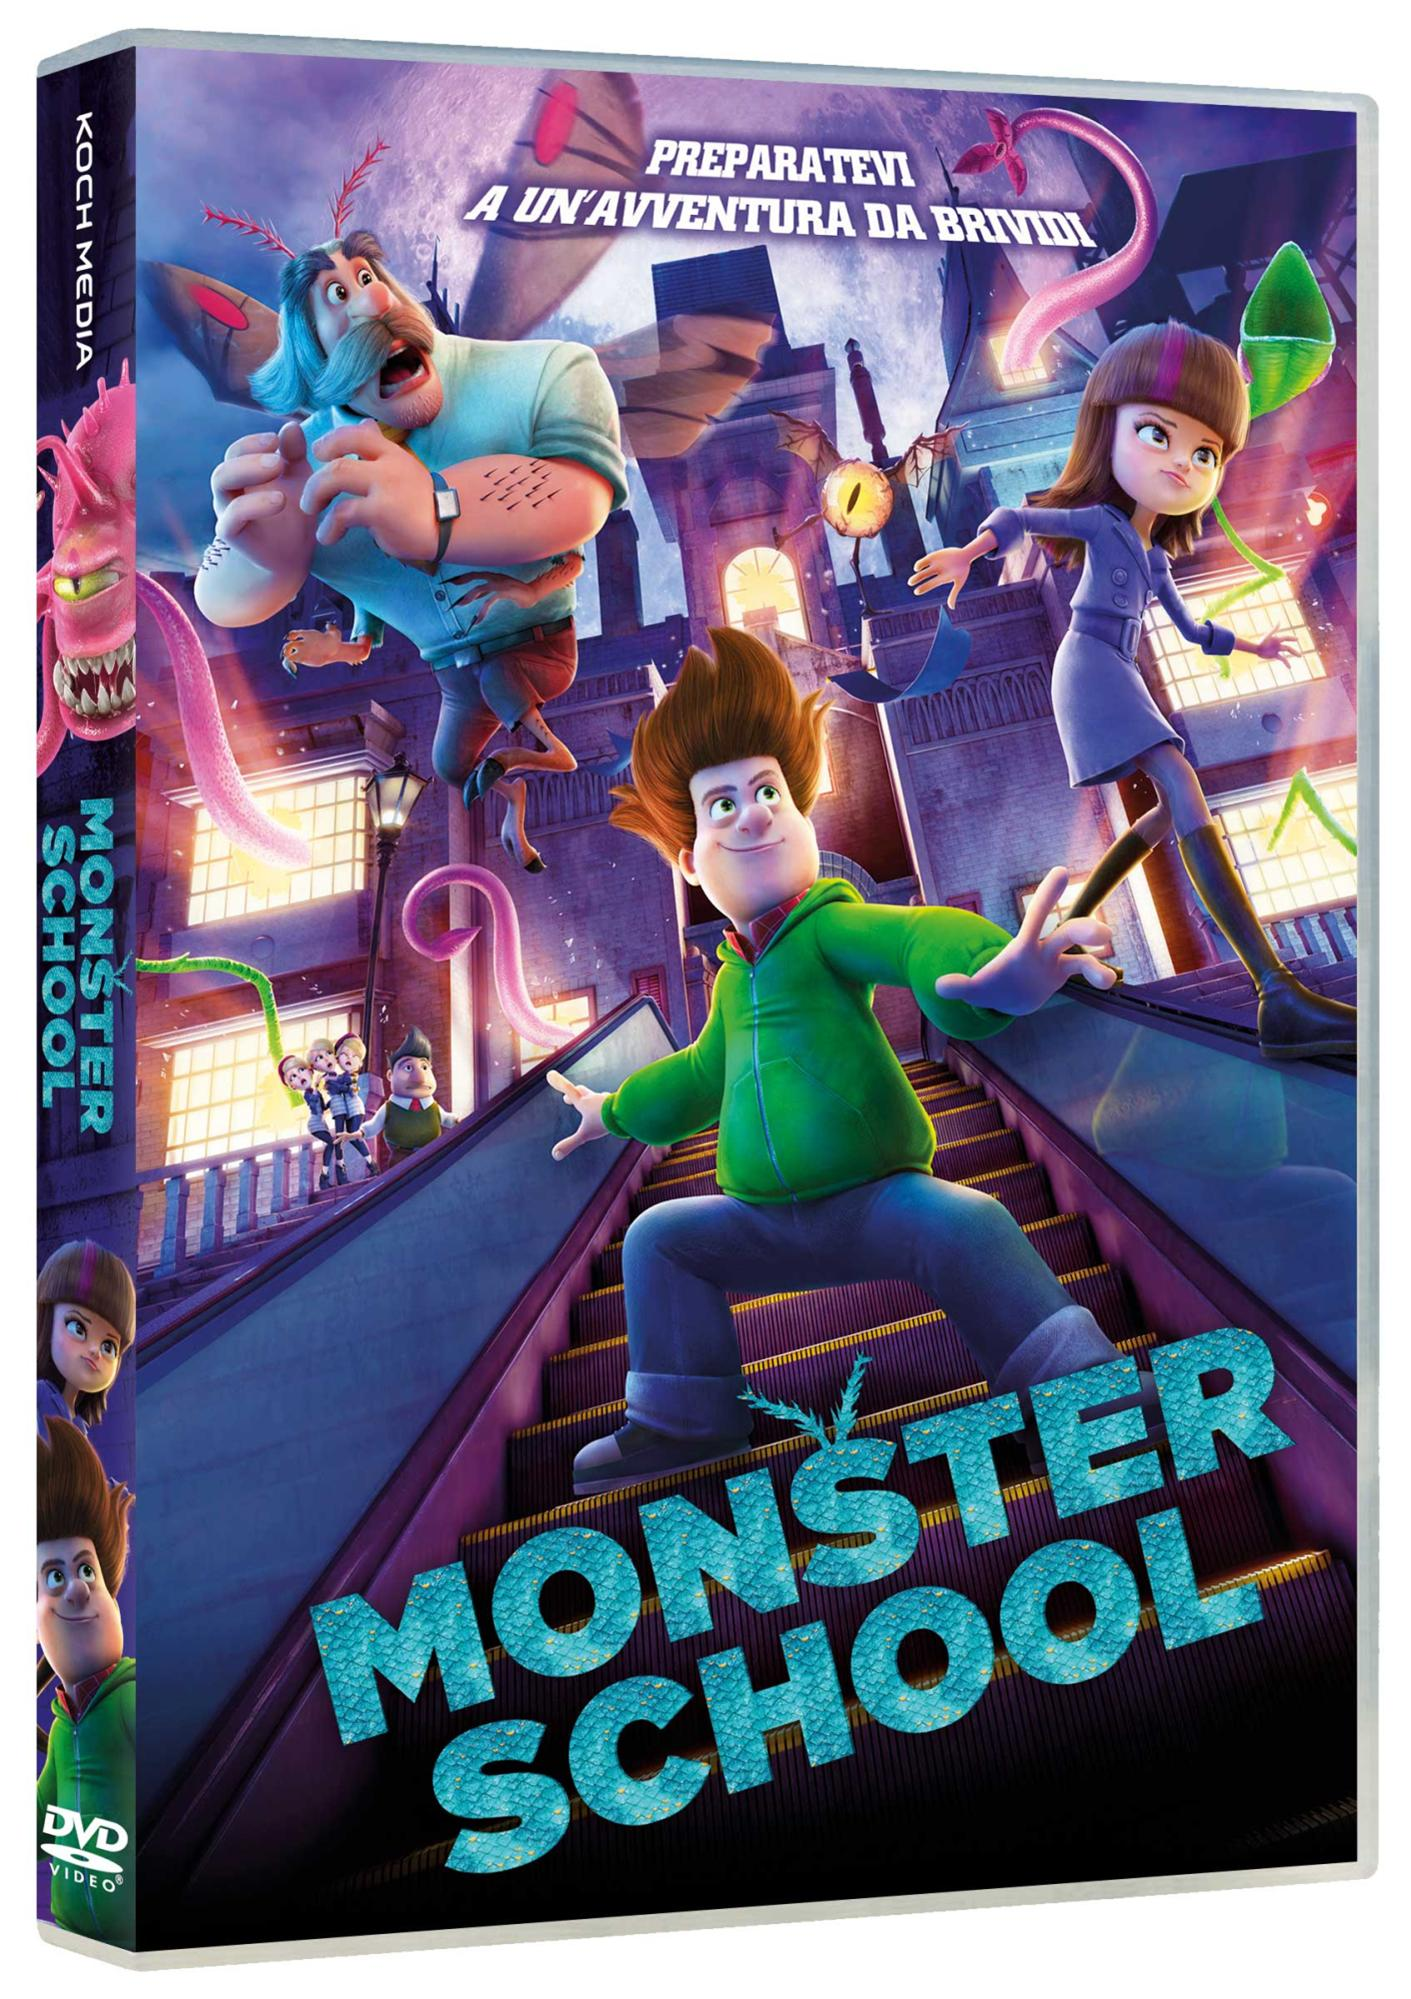 MONSTER SCHOOL - 2020 (DVD)